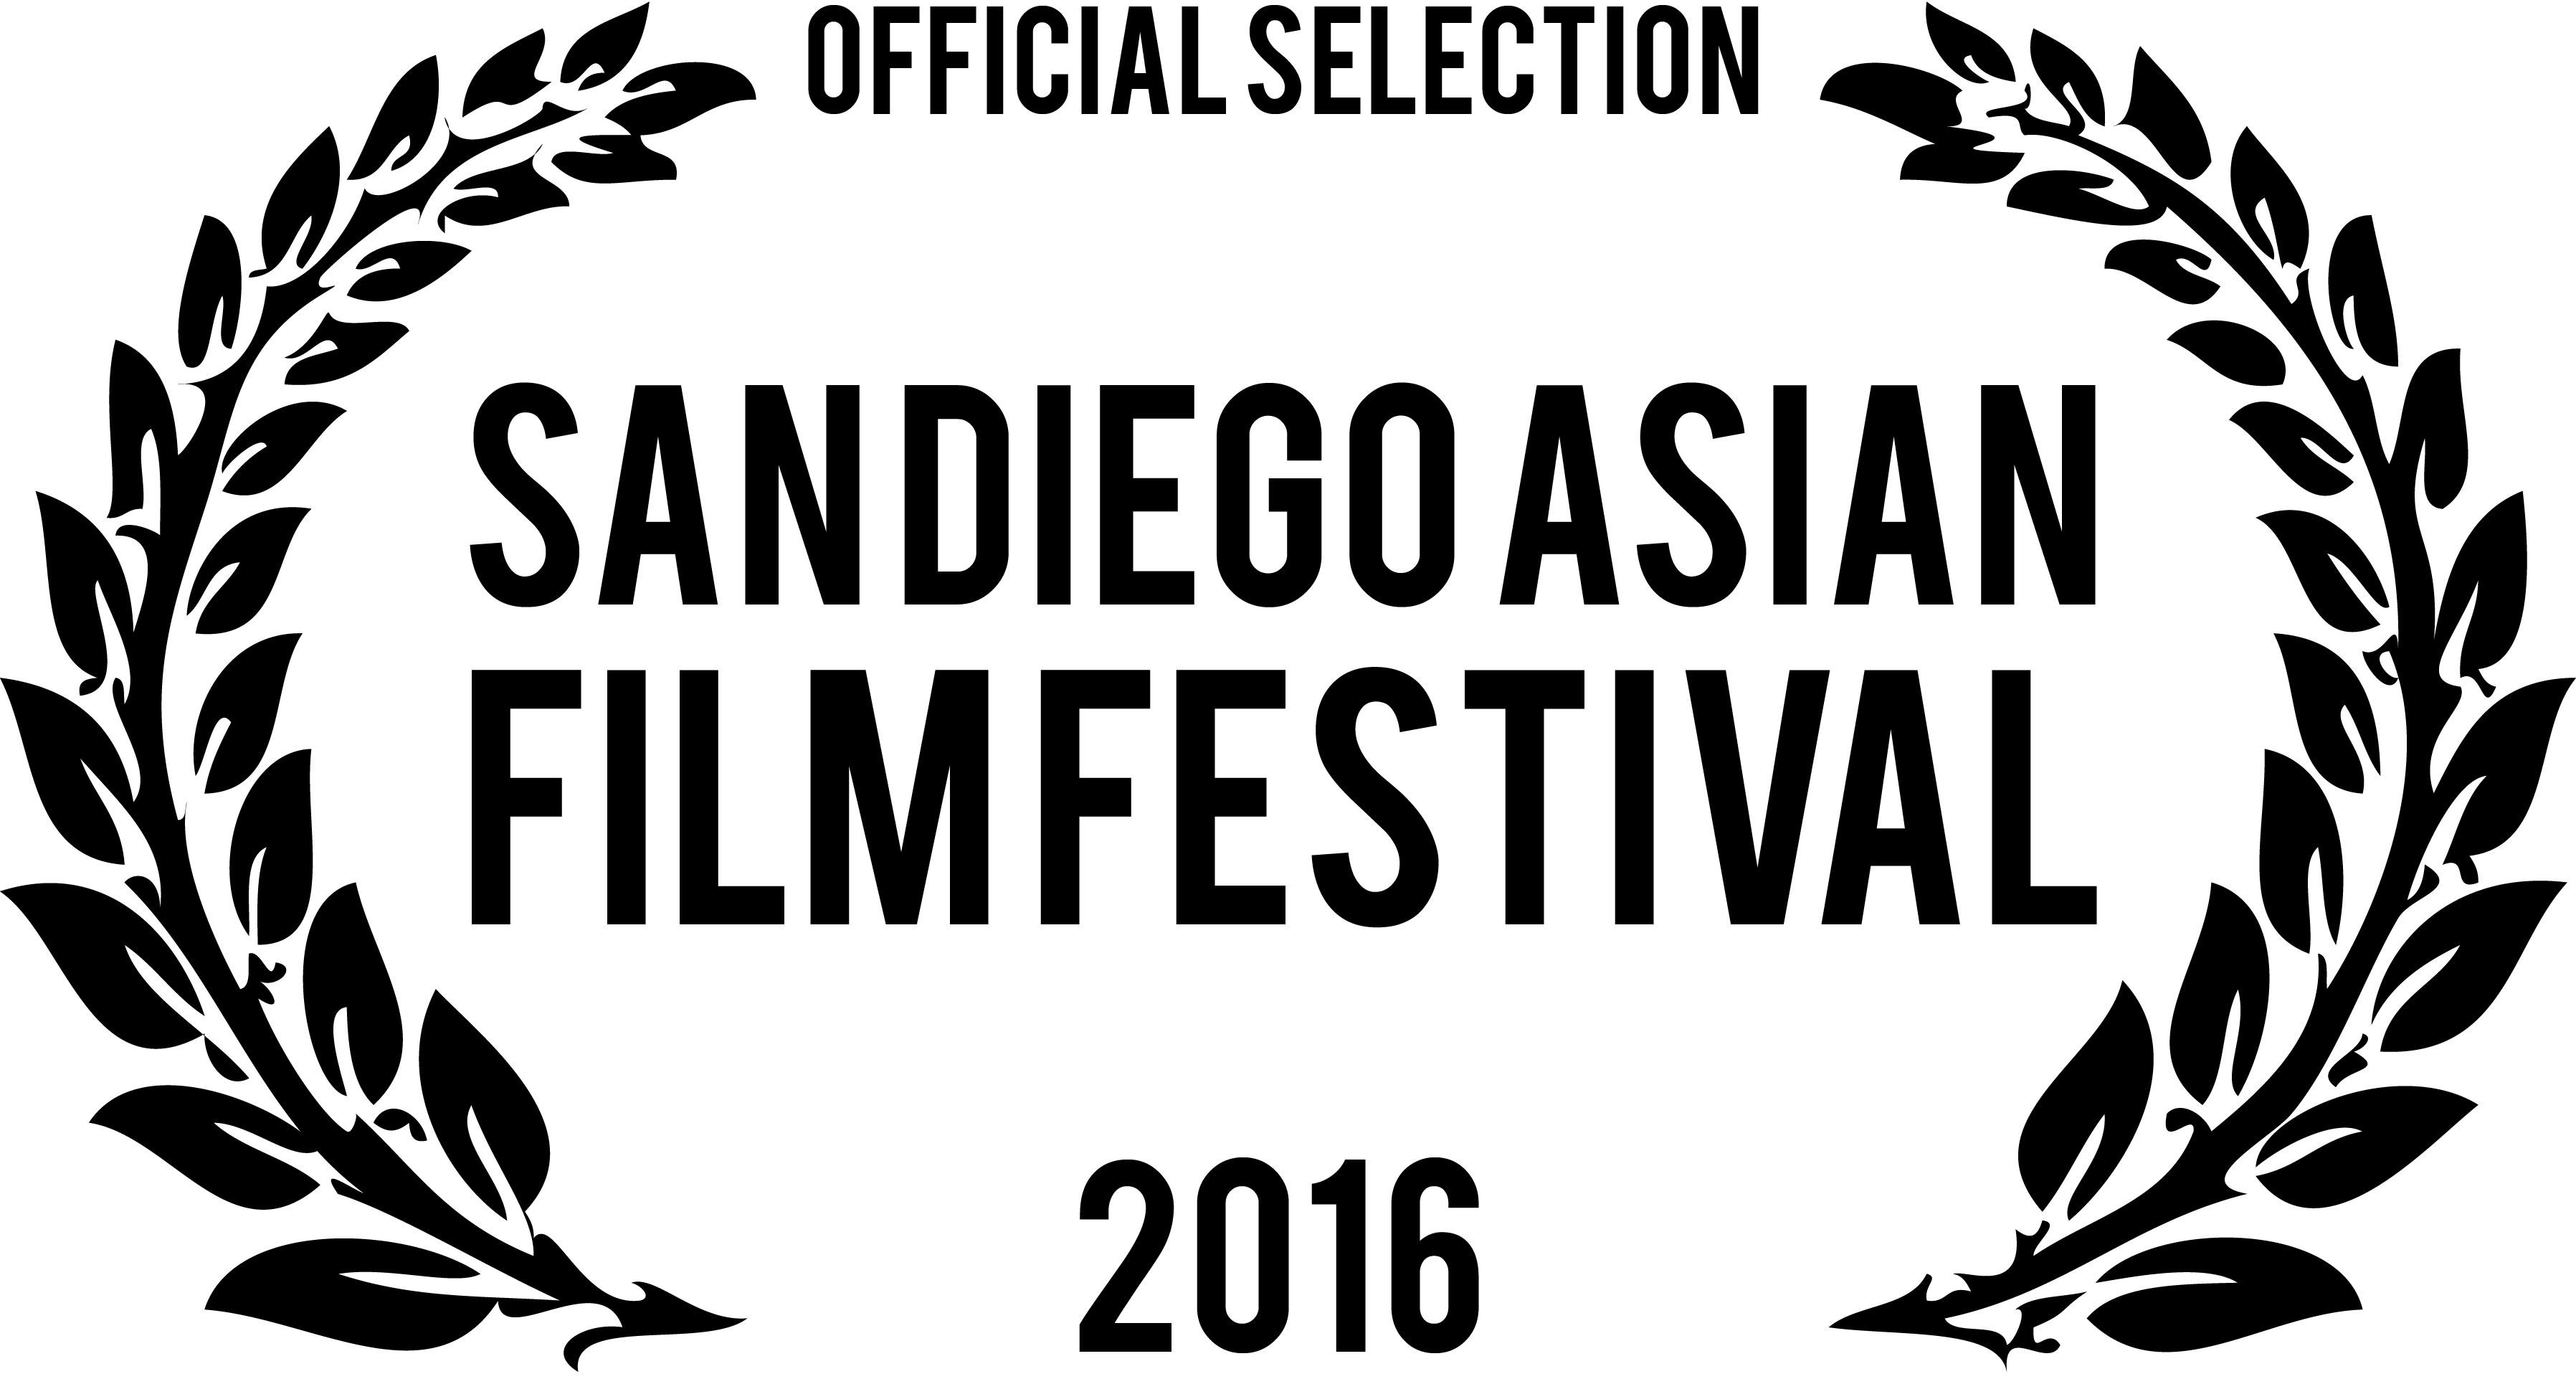 San Diego Asian Film Festival 2016